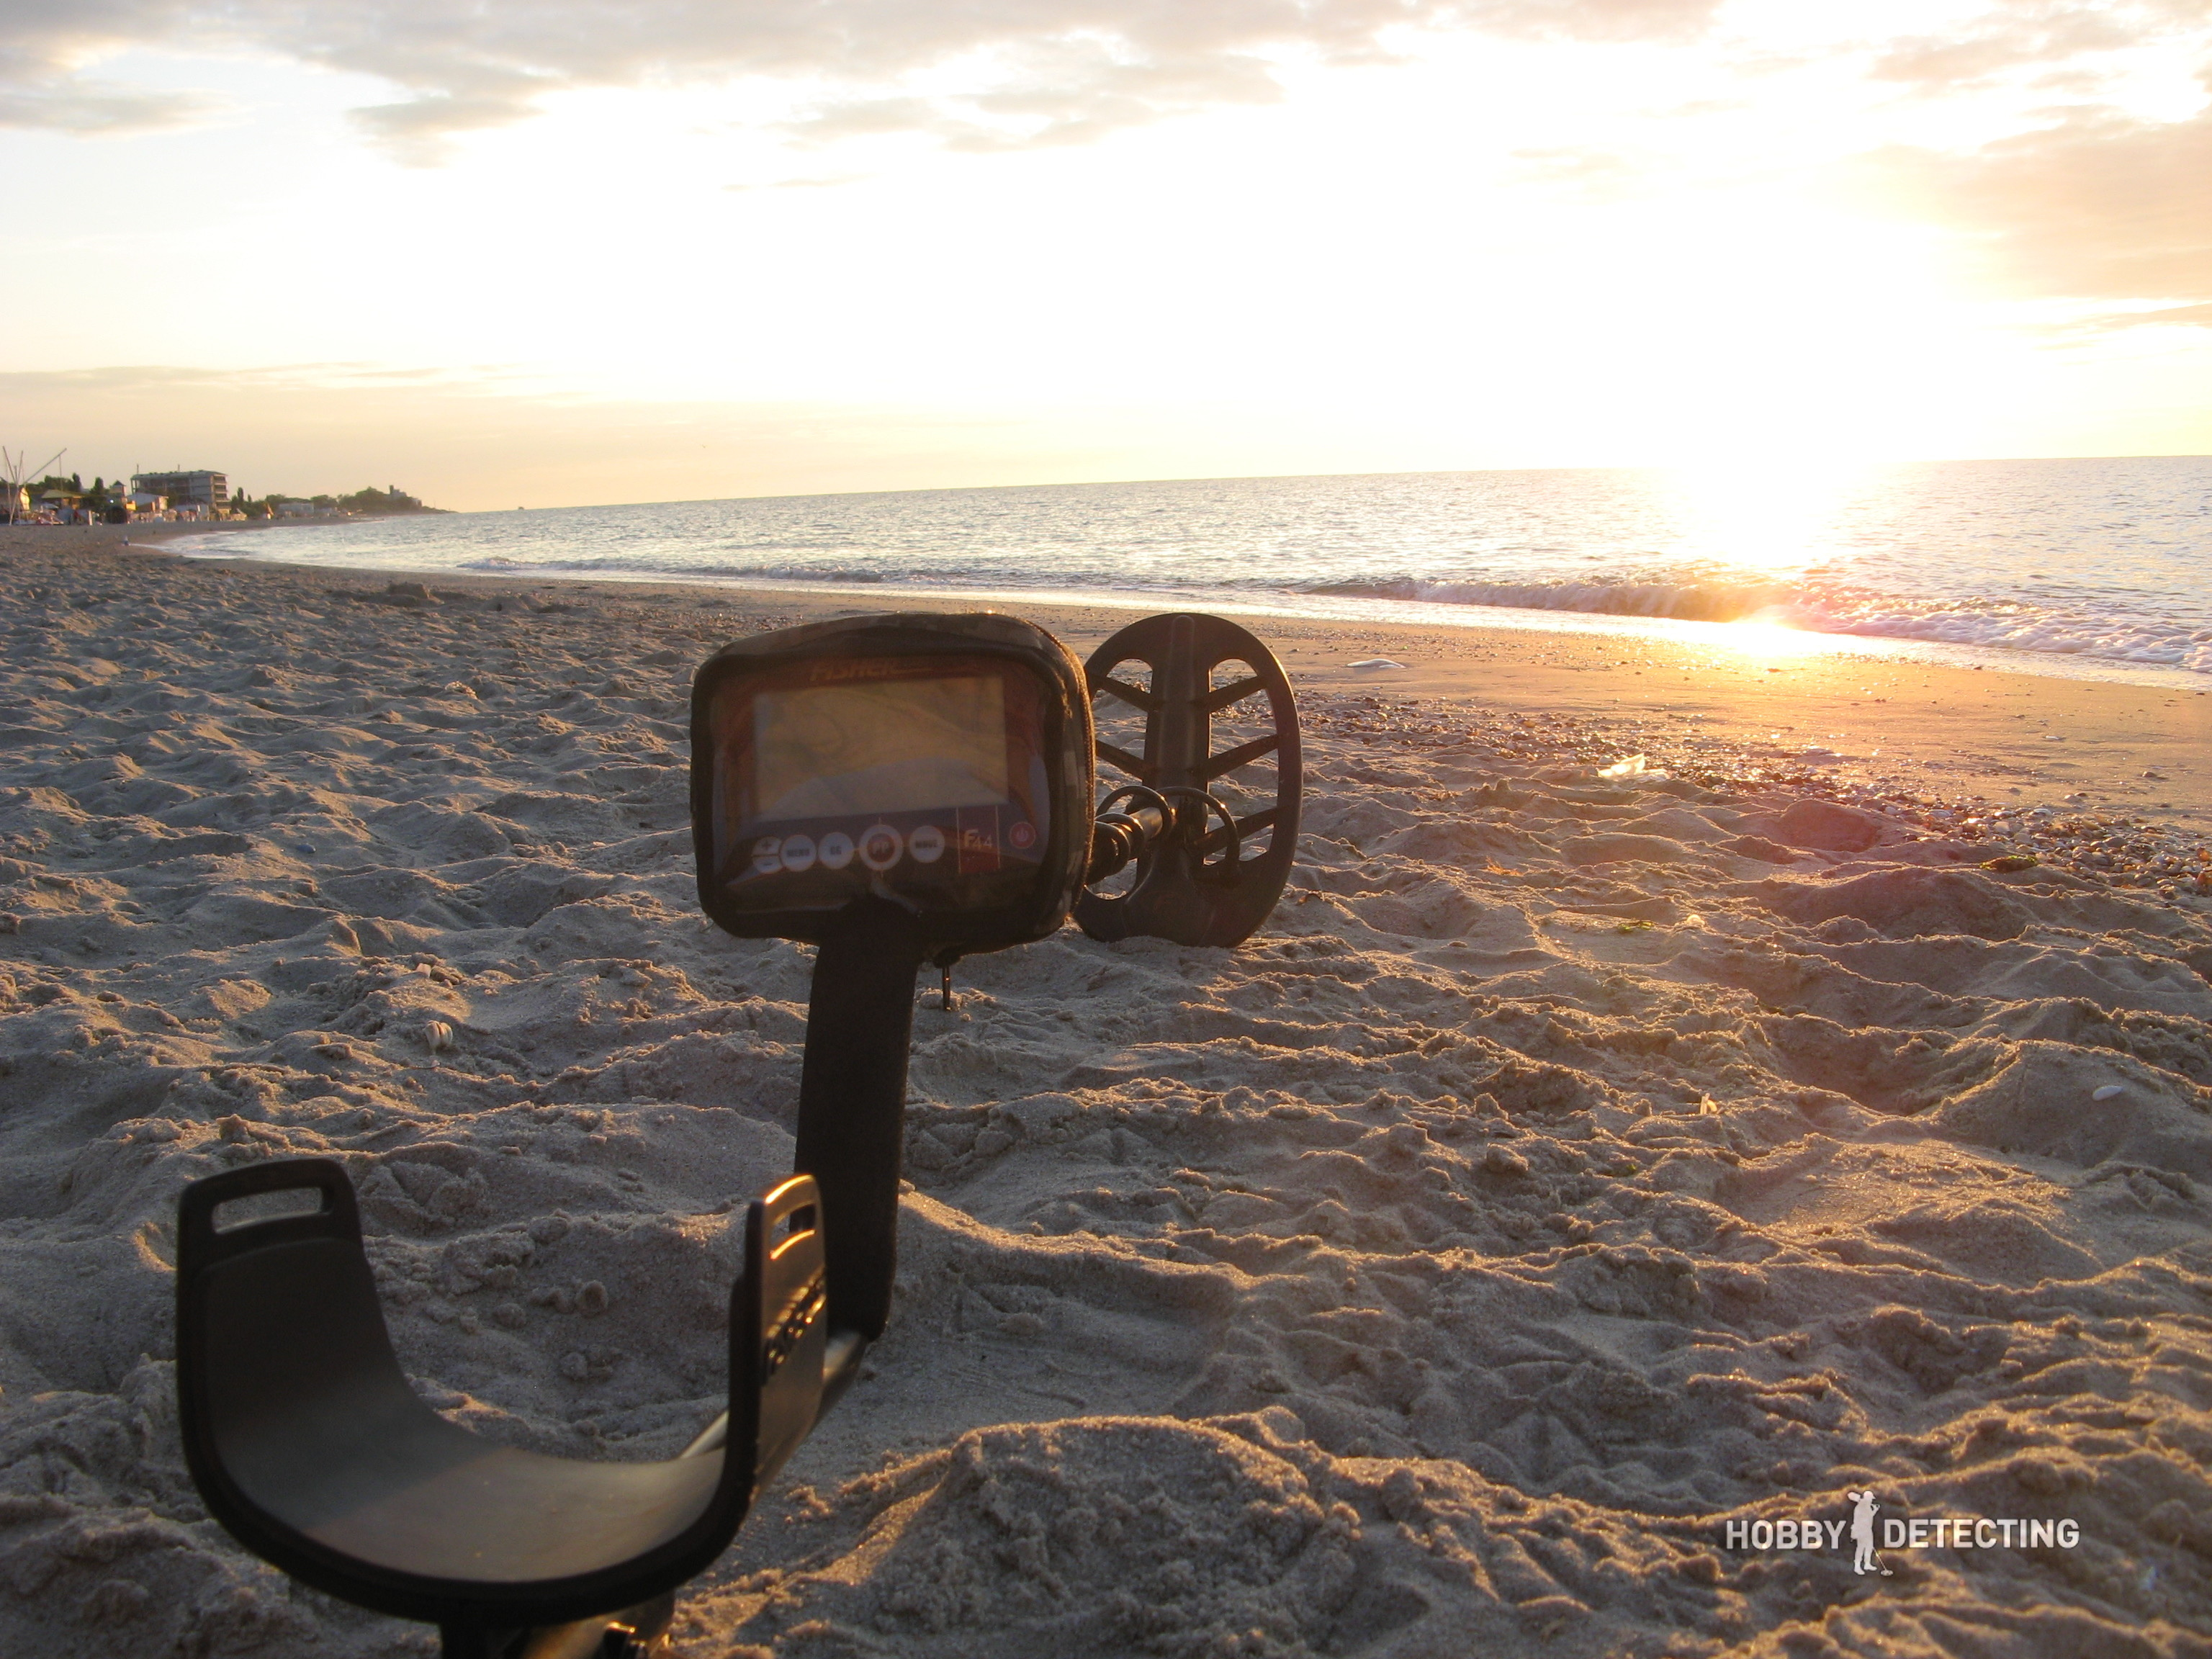 Detecting In 2017 The Secrets Of Beach Diggers Story Fun Metal Detector To Findcoins At Because My Laziness I Only Went Twice Sea Vacation It Is Very Difficult For Me Get Up Half Past Five Morning When Go